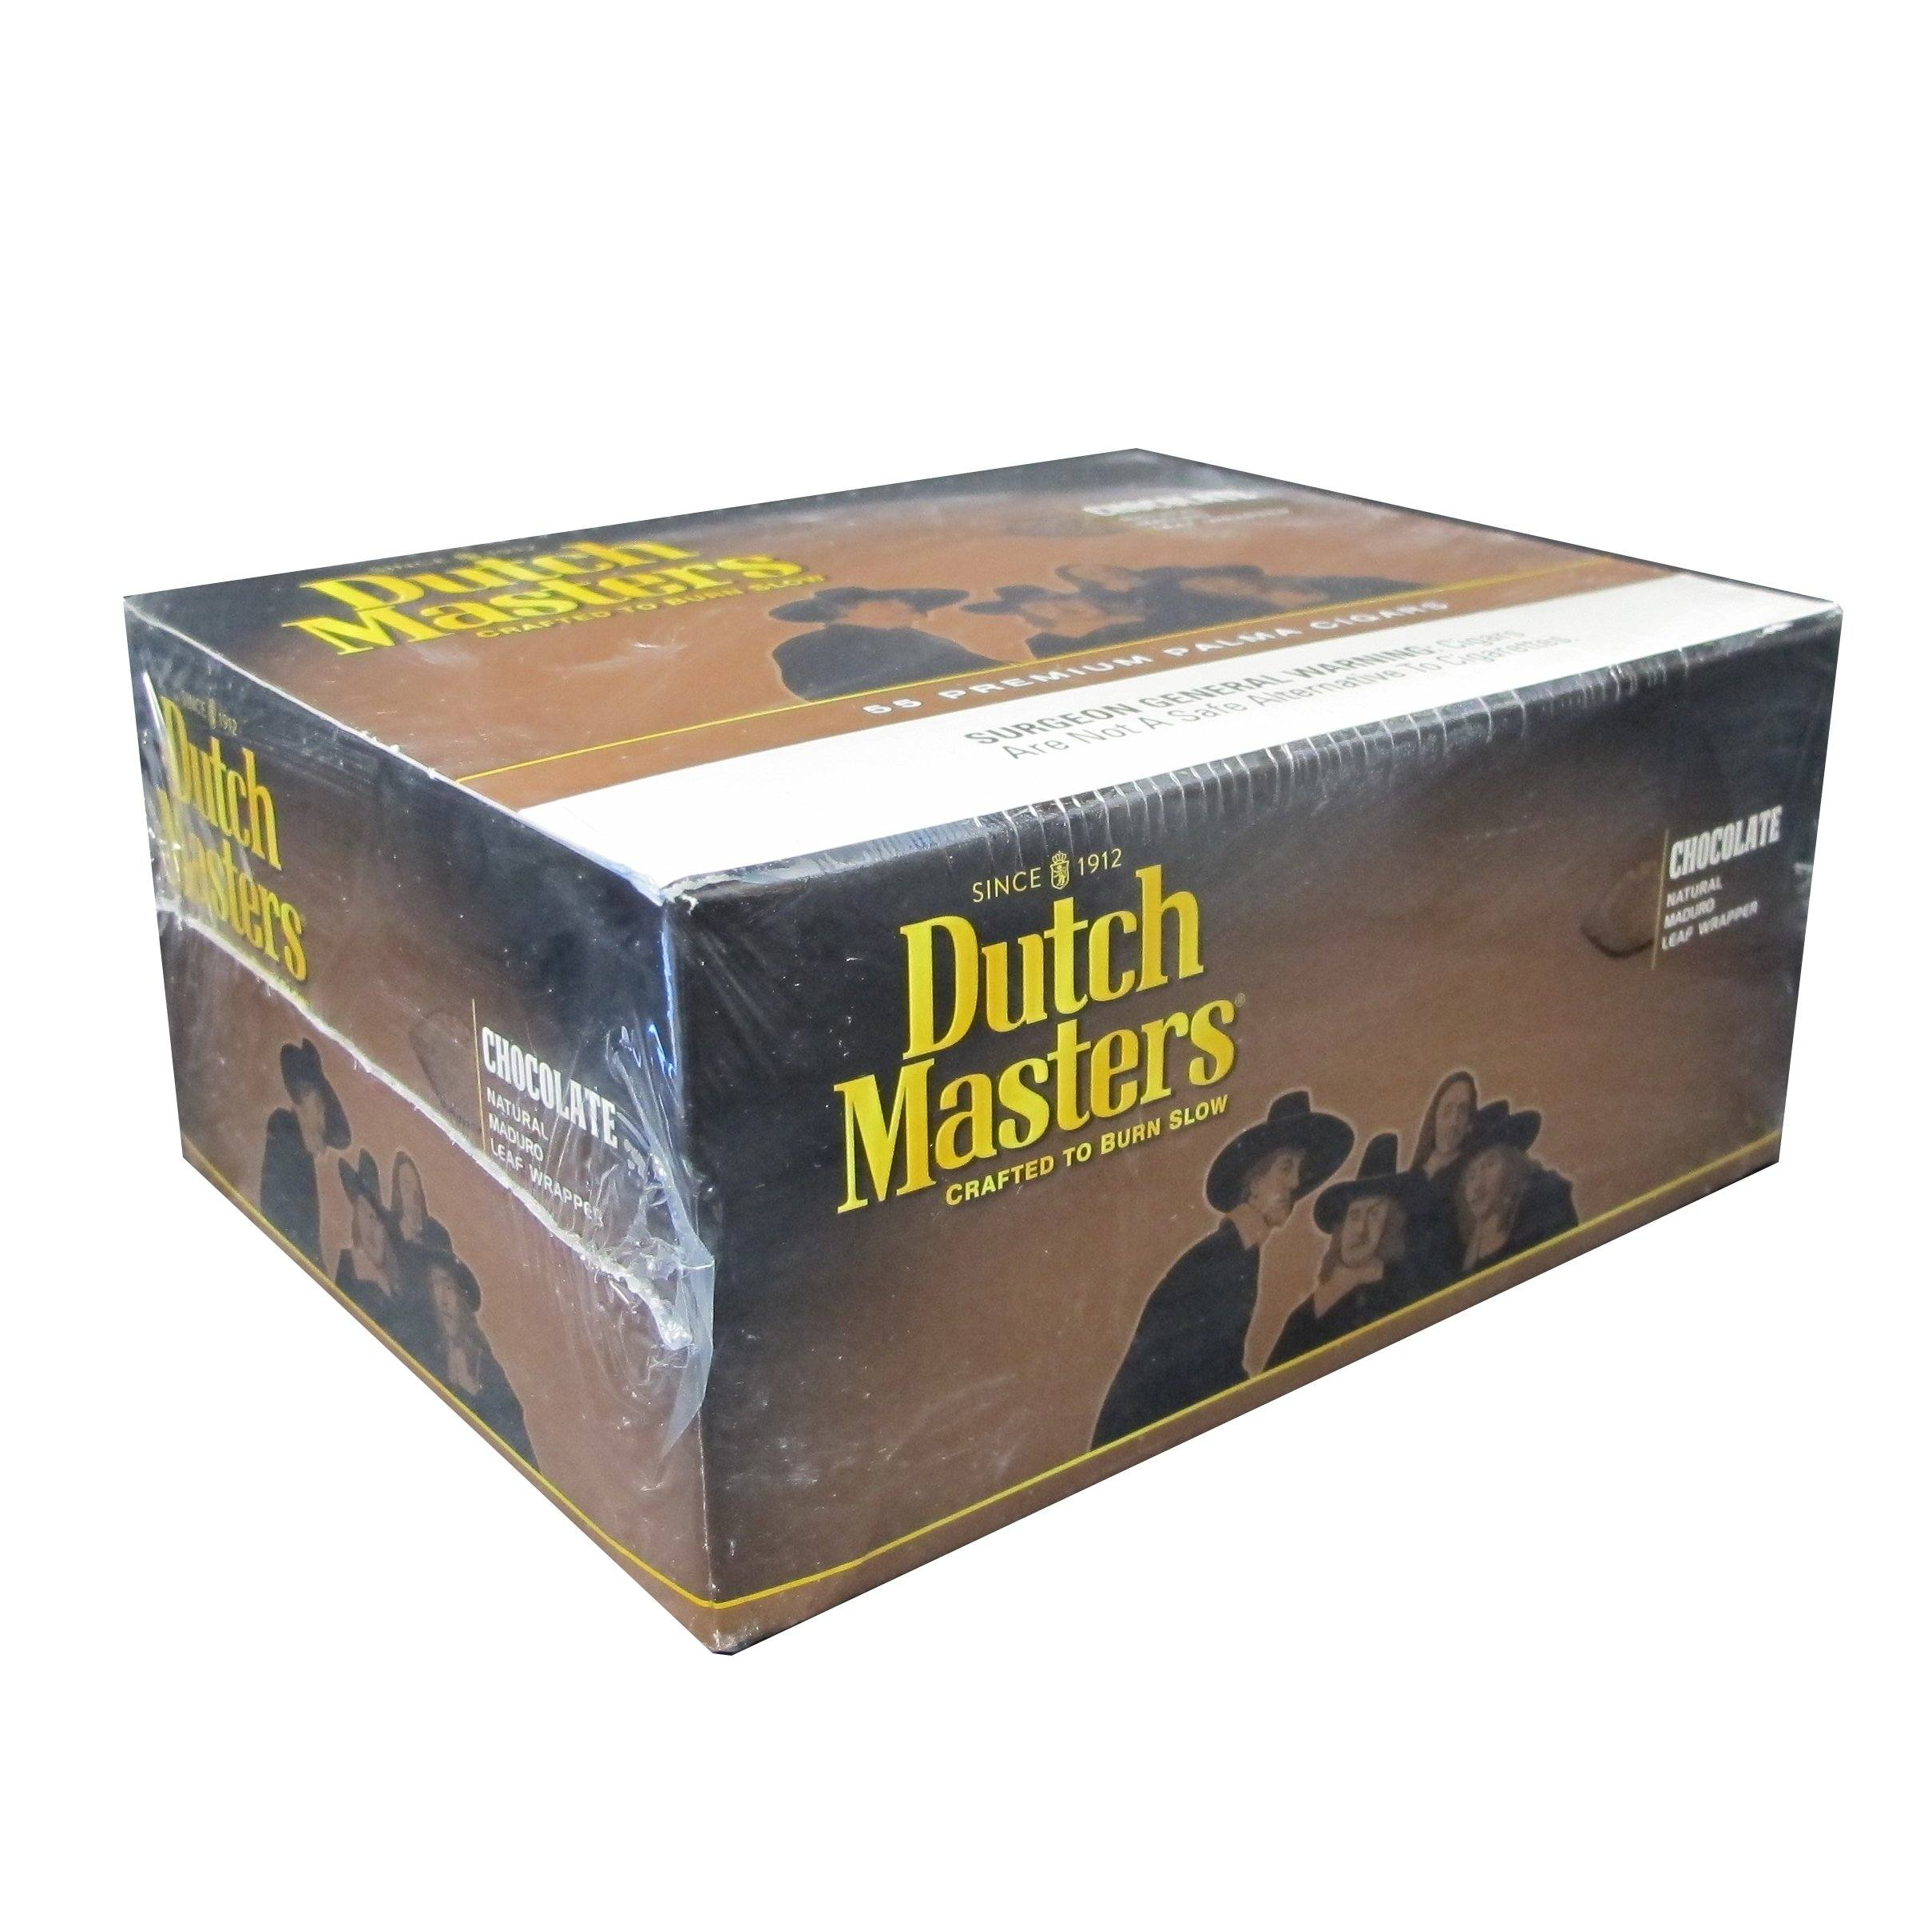 Dutch Masters Chocolate Palma Cigars